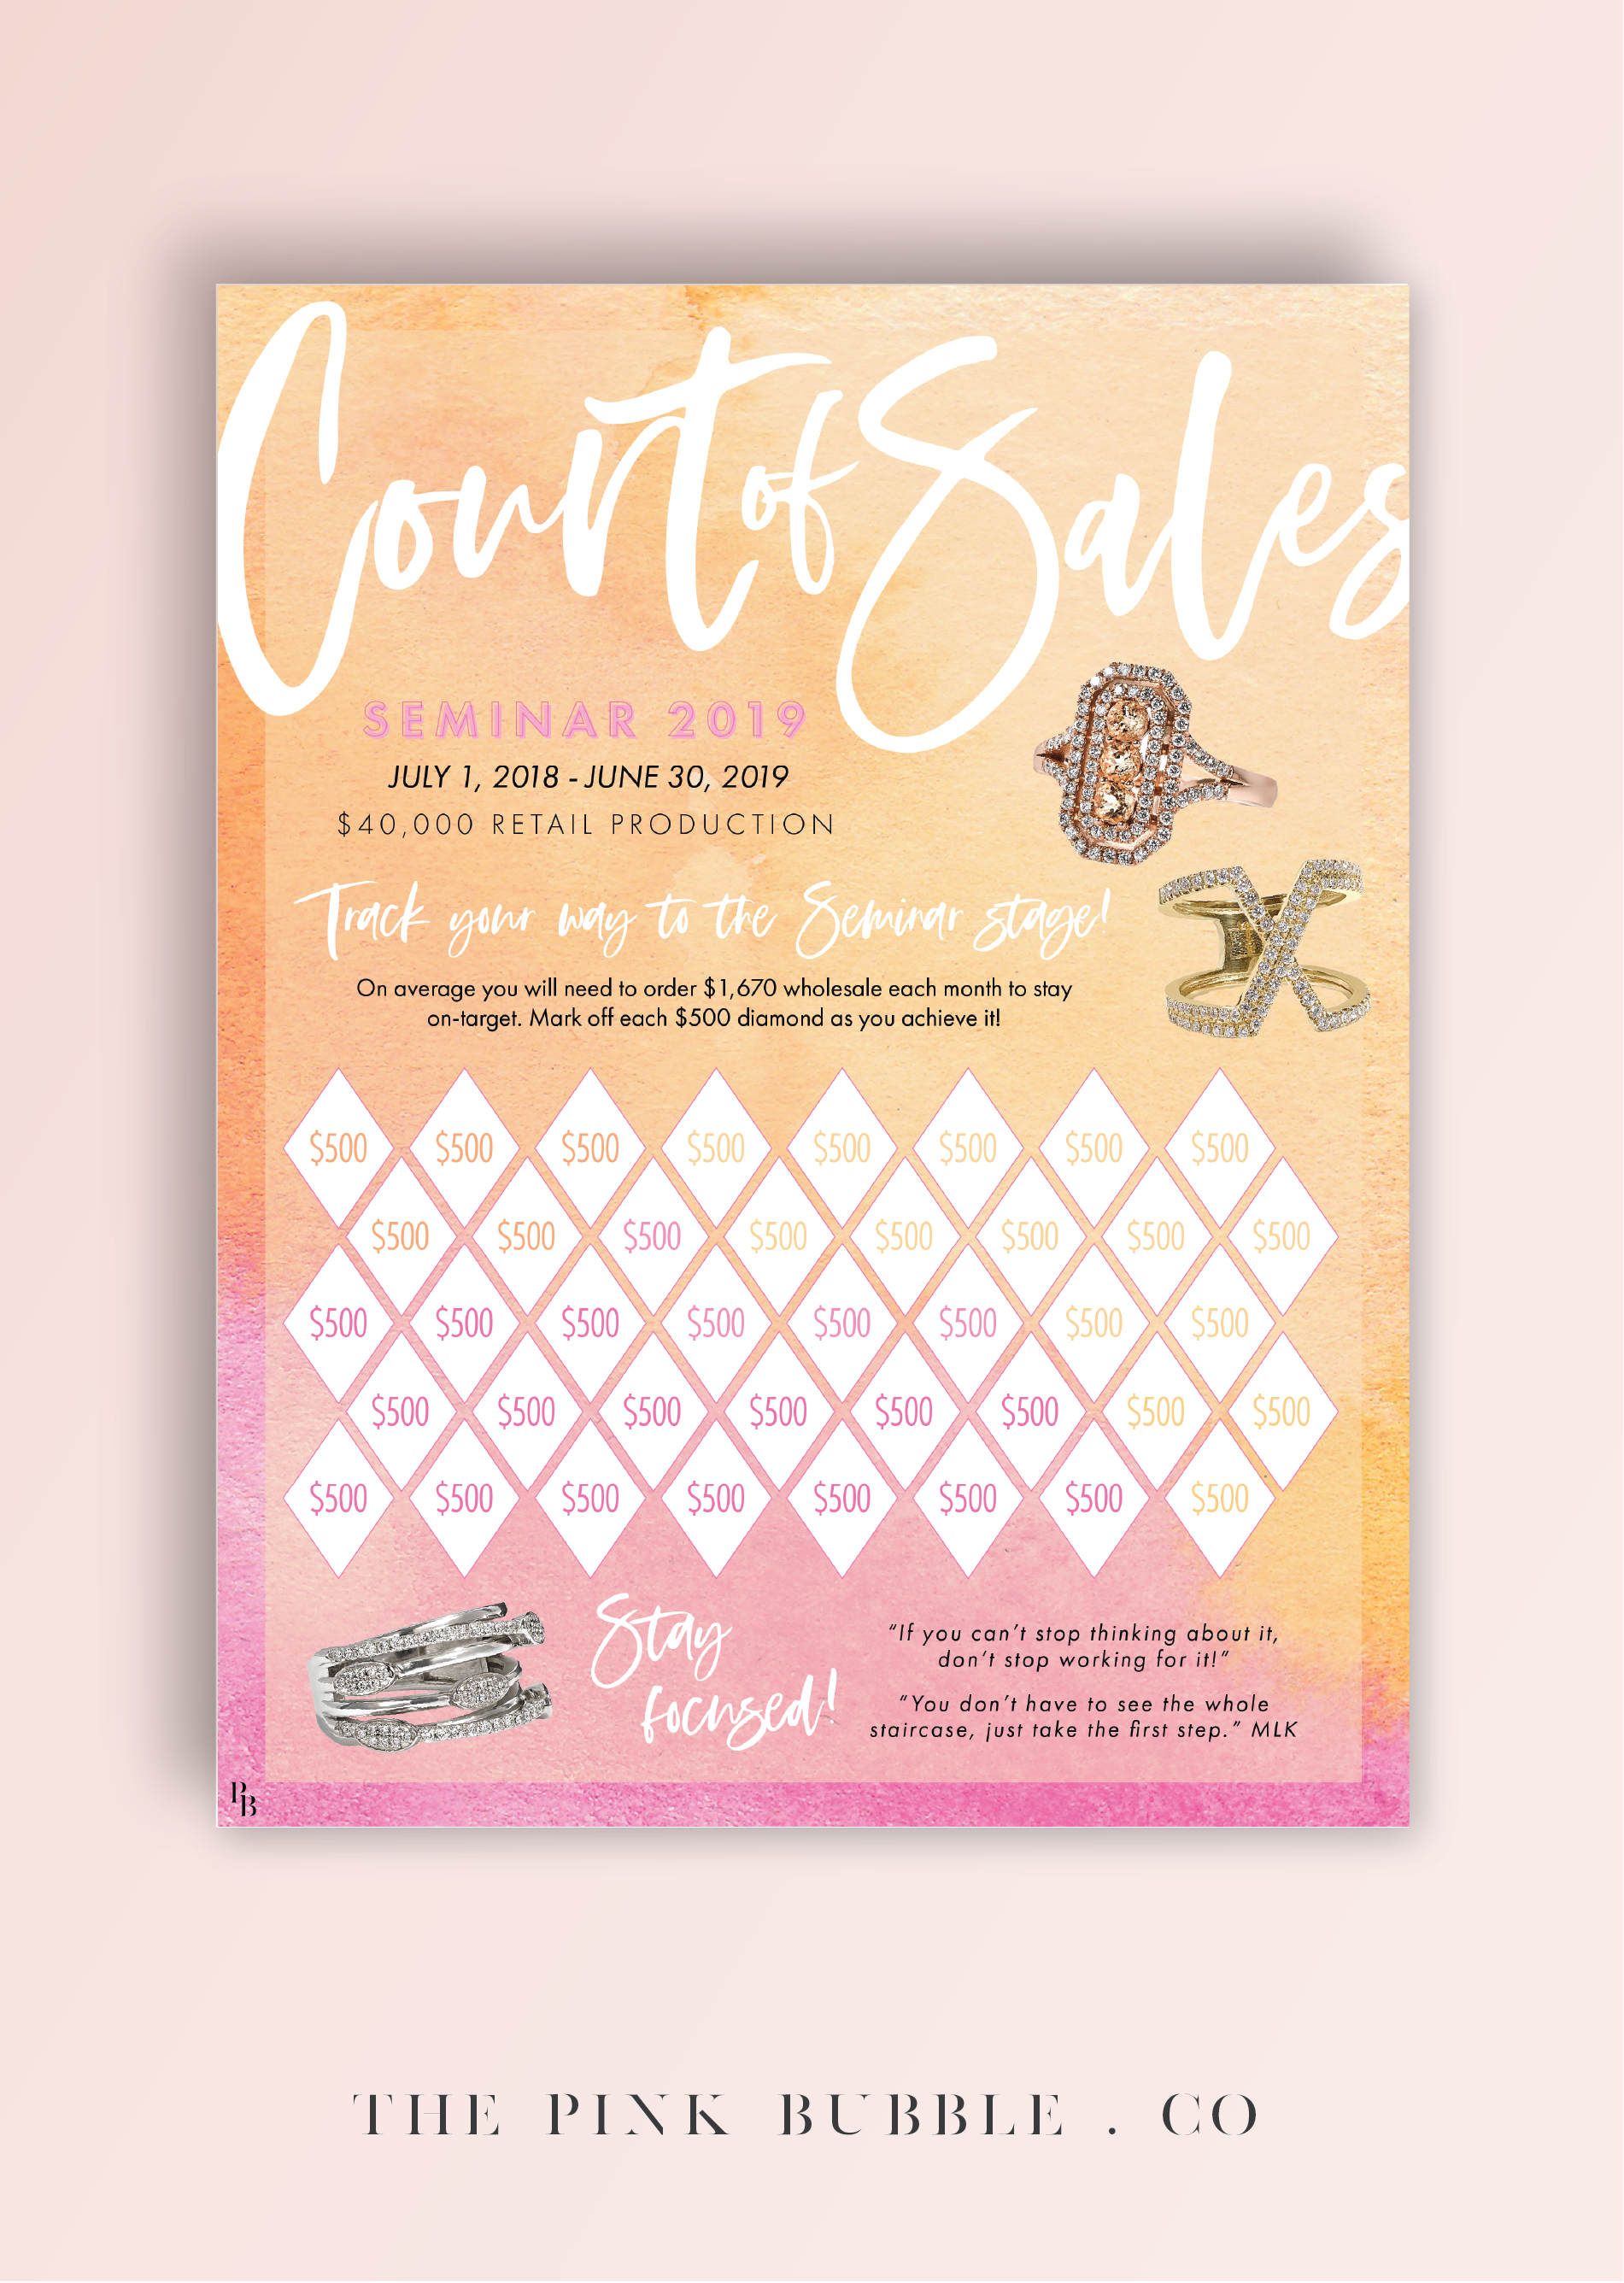 Mary Kay Sales Ideas For June 2019 Seminar Year End Mary Kay Court of Sales 2019 Tracking Sheet! Track your way to the